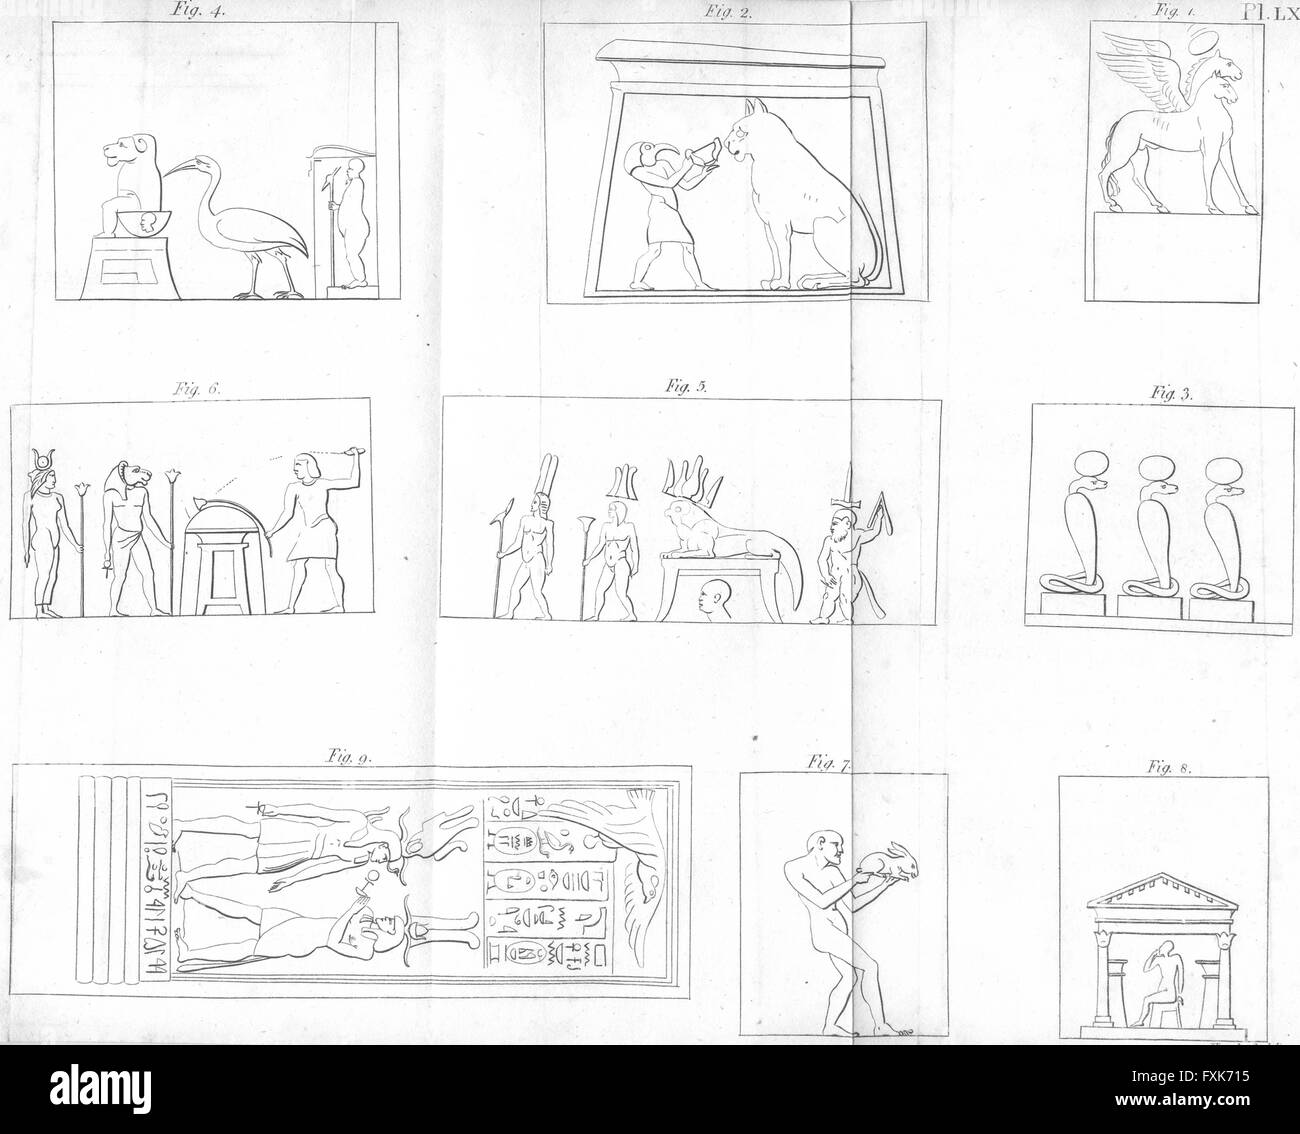 EGYPT: Pharoes hieroglyphs hieroglyphics, antique print c1800 - Stock Image